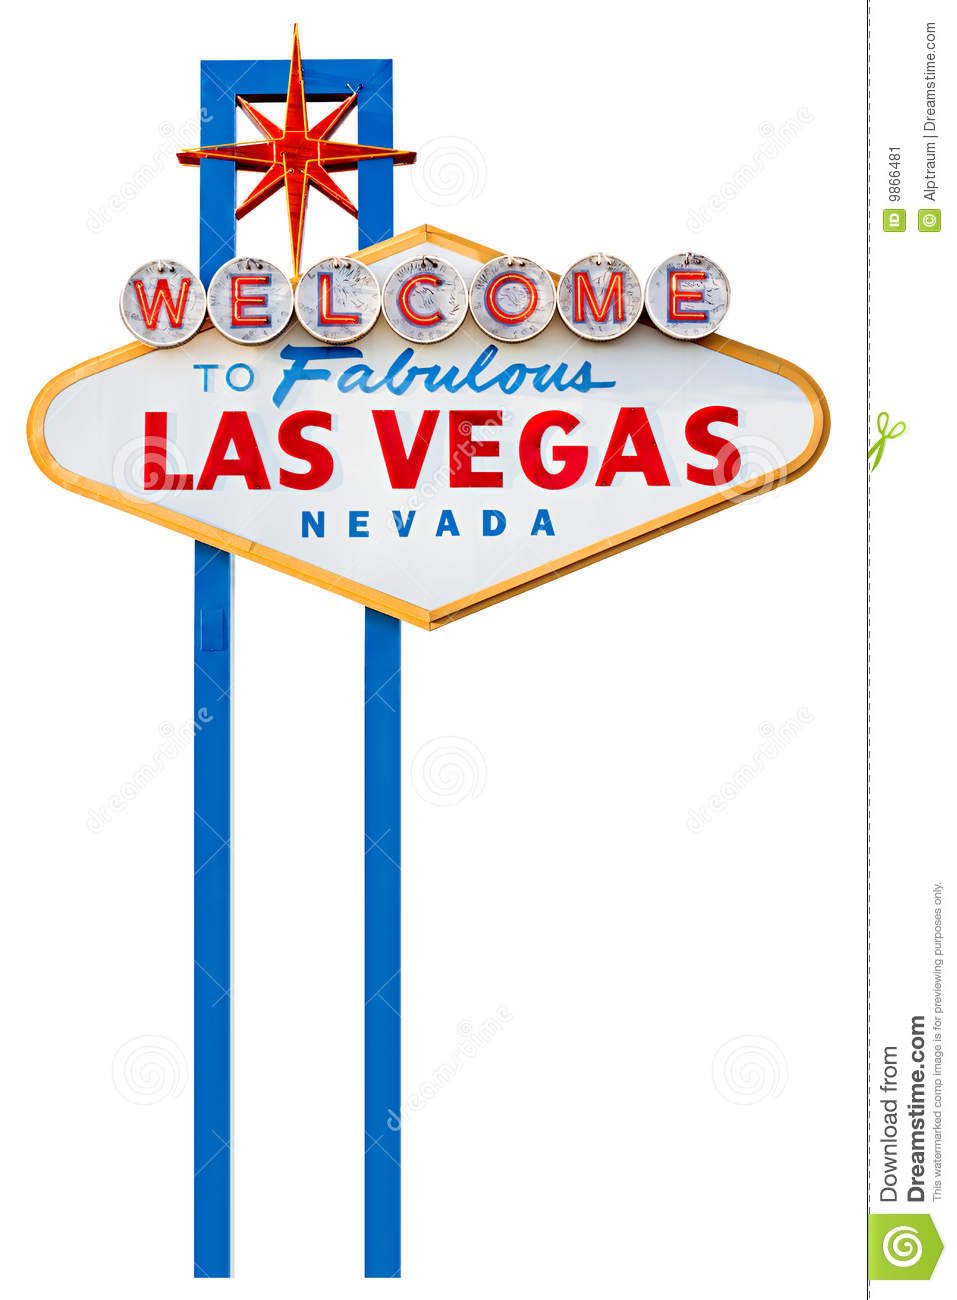 Watch more like Blank Las Vegas Clip Art.